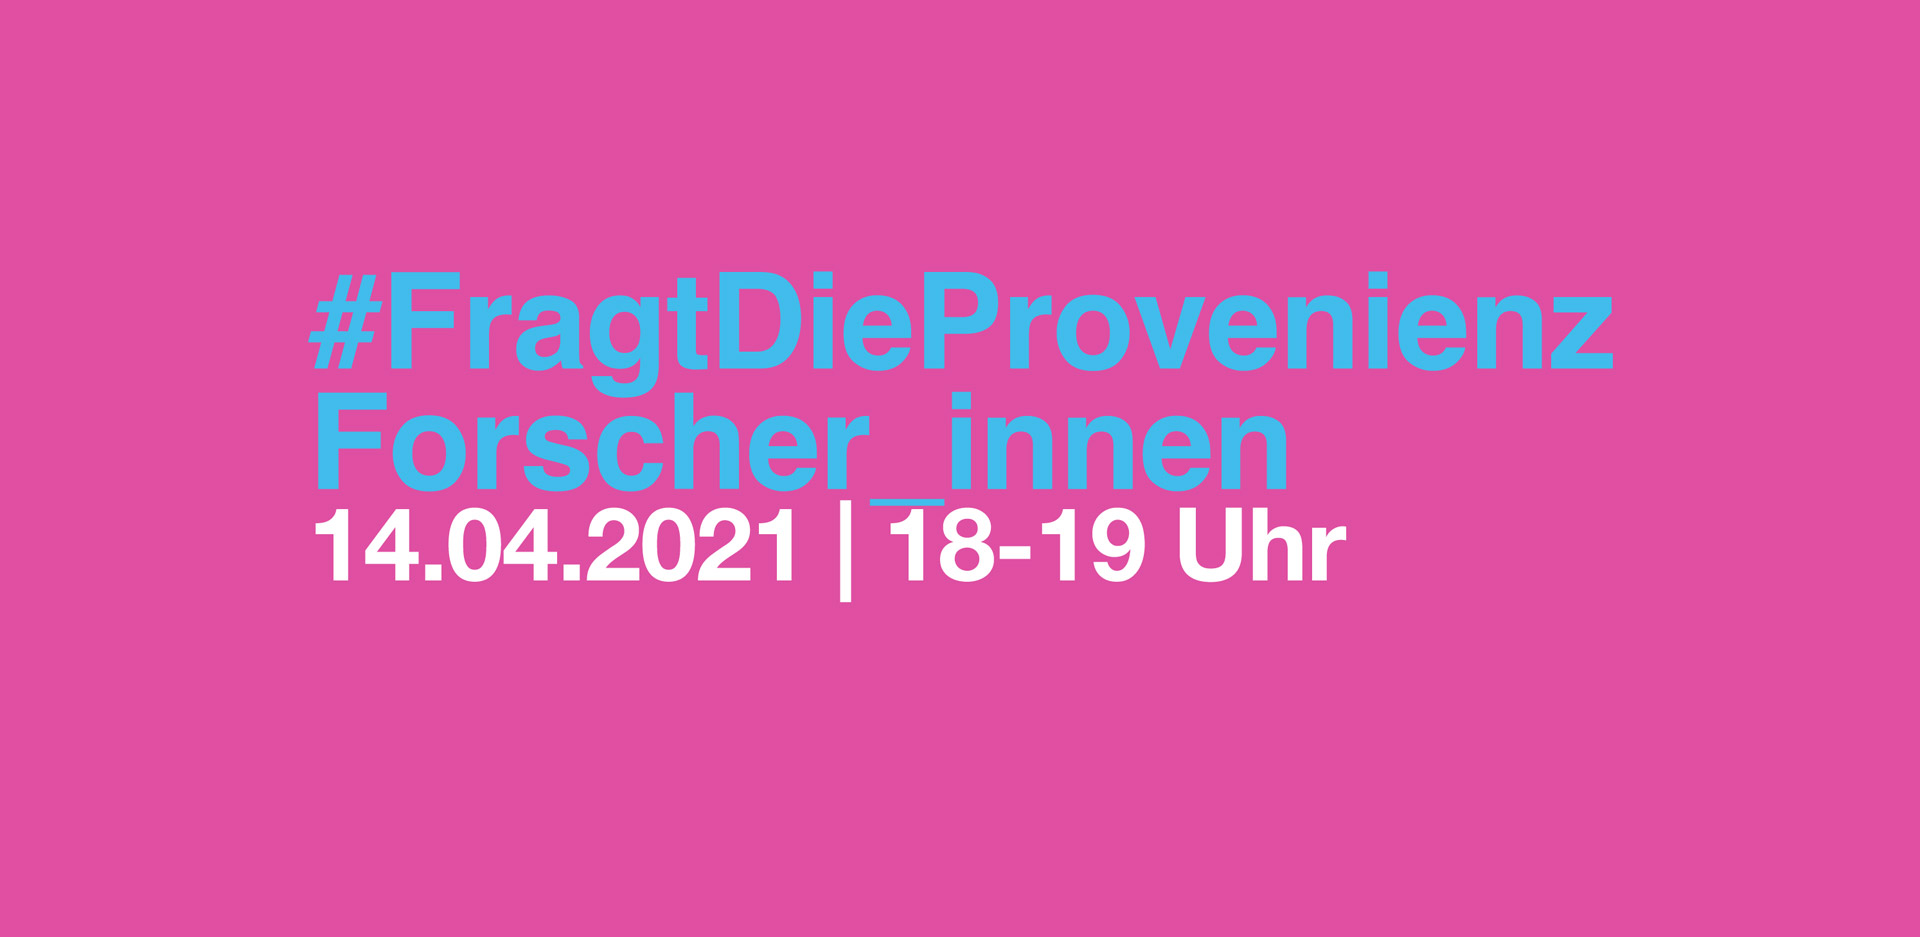 #FragtDieProvenienzForscher_innen: A Participatory Call to Action for the 3rd International Day of Provenance Research